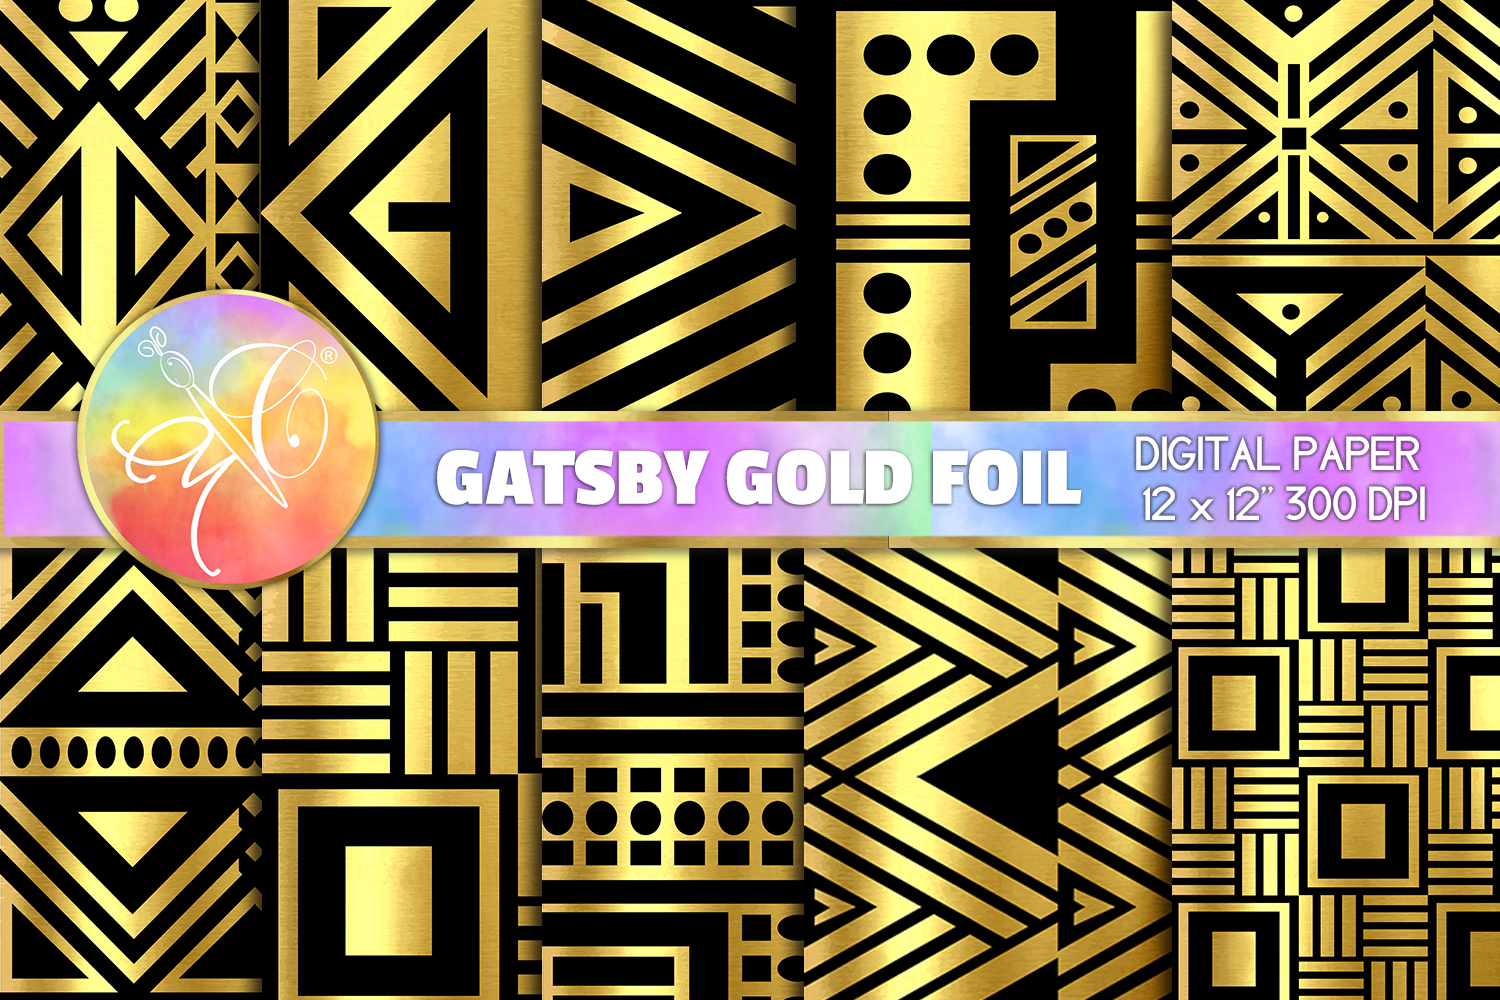 Art Deco Digital Paper, Gatsby, Black and Gold Backgrounds example image 1